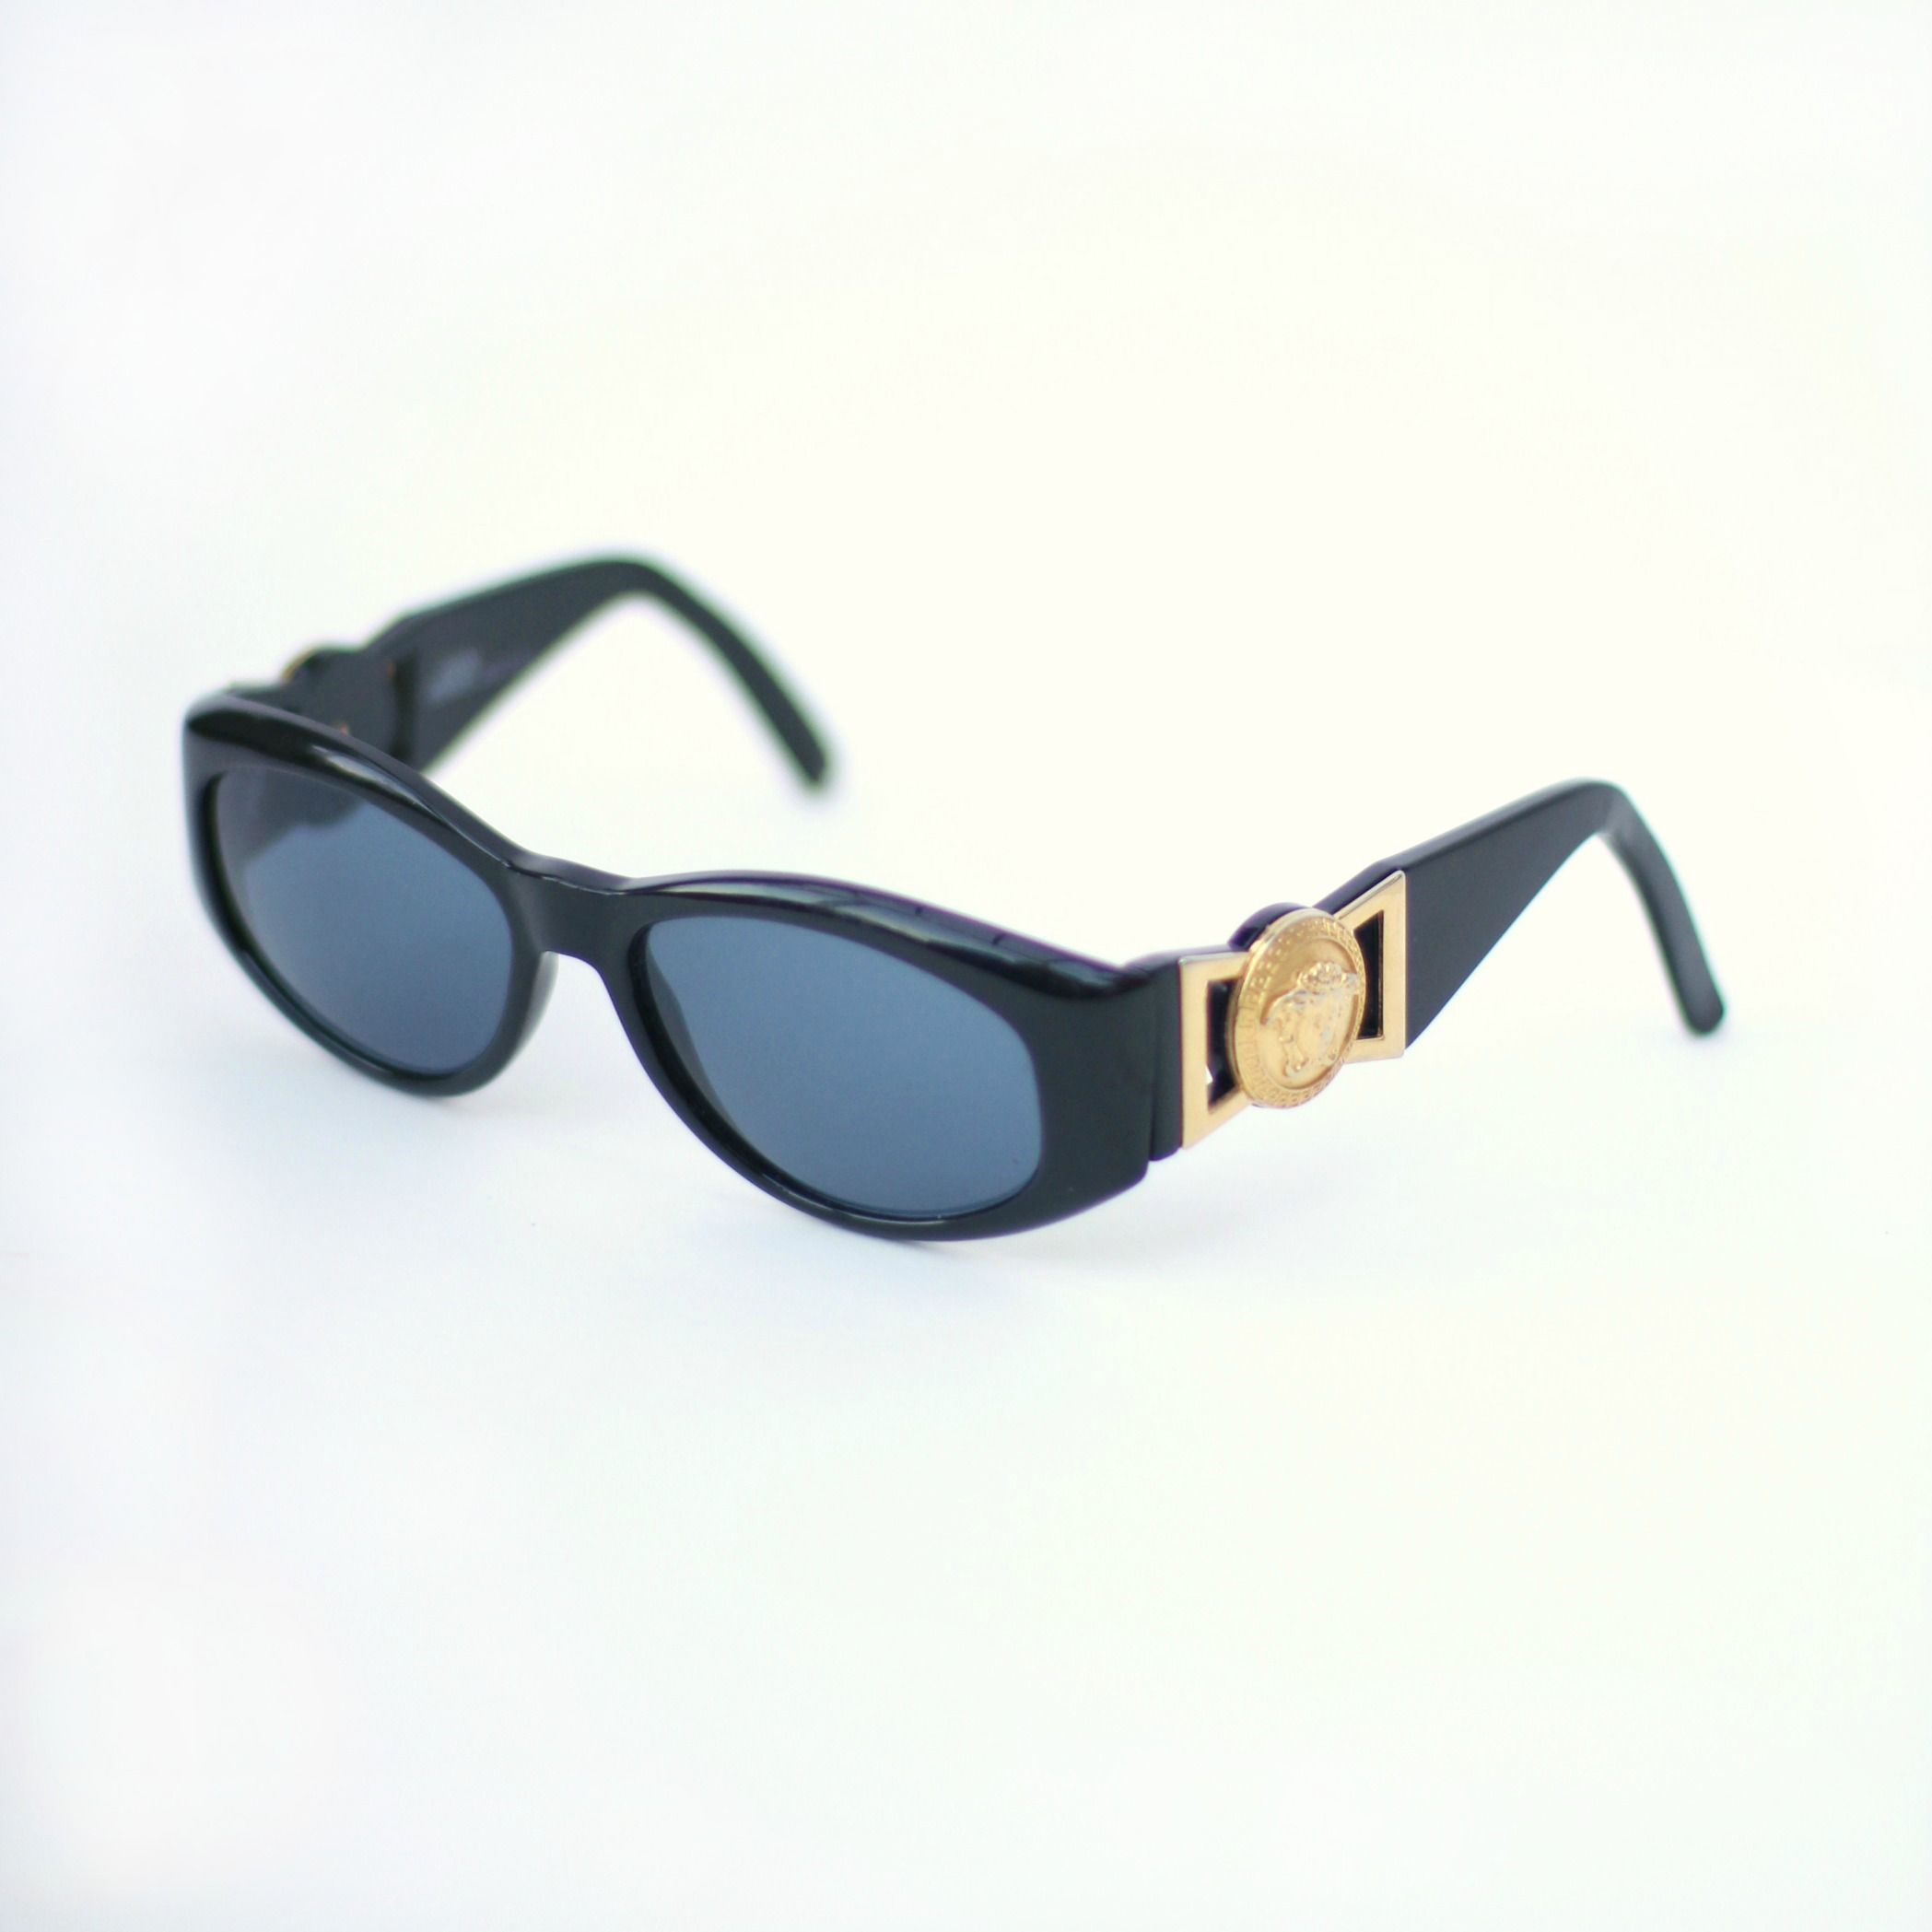 f493058117 Original pair of Gianni Versace MOD 424 sunglasses - the most iconic pair  to date